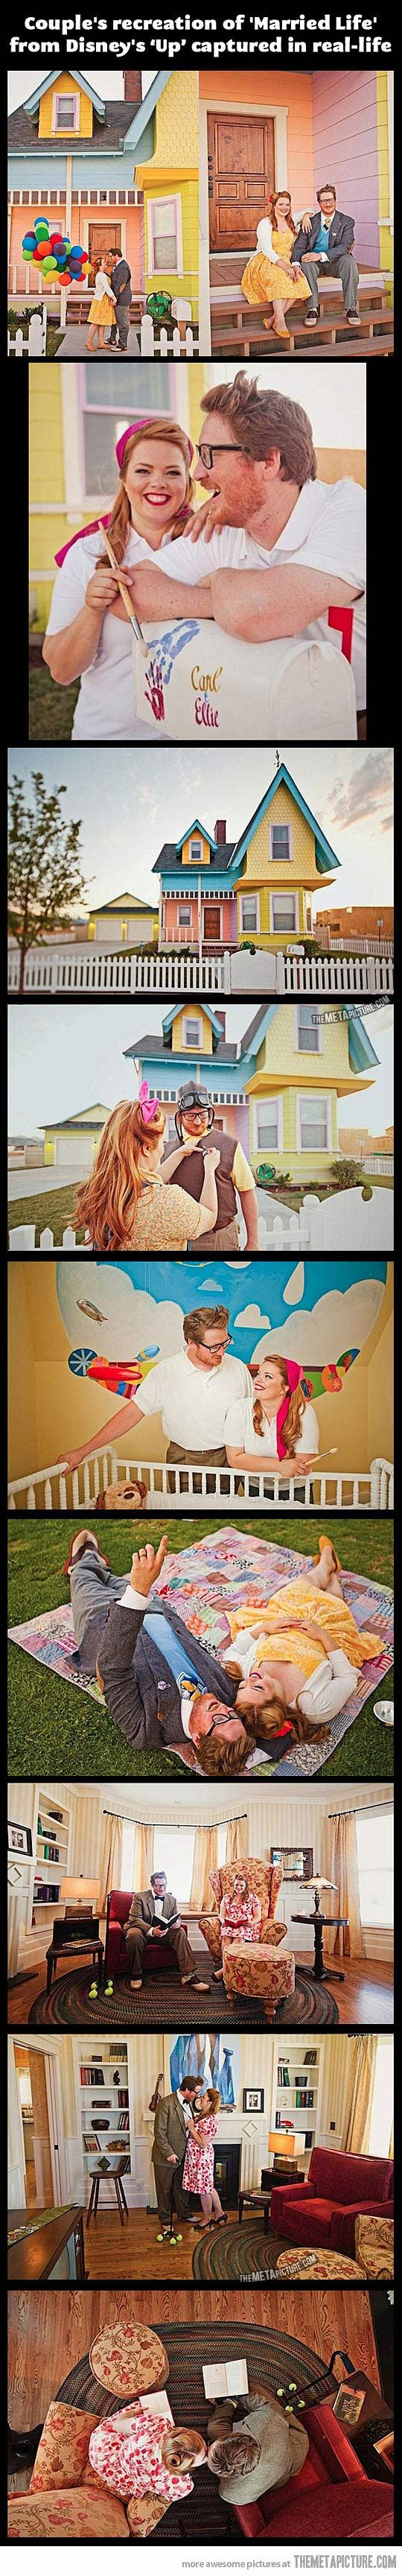 'Up' in real life…this is far too cute!: